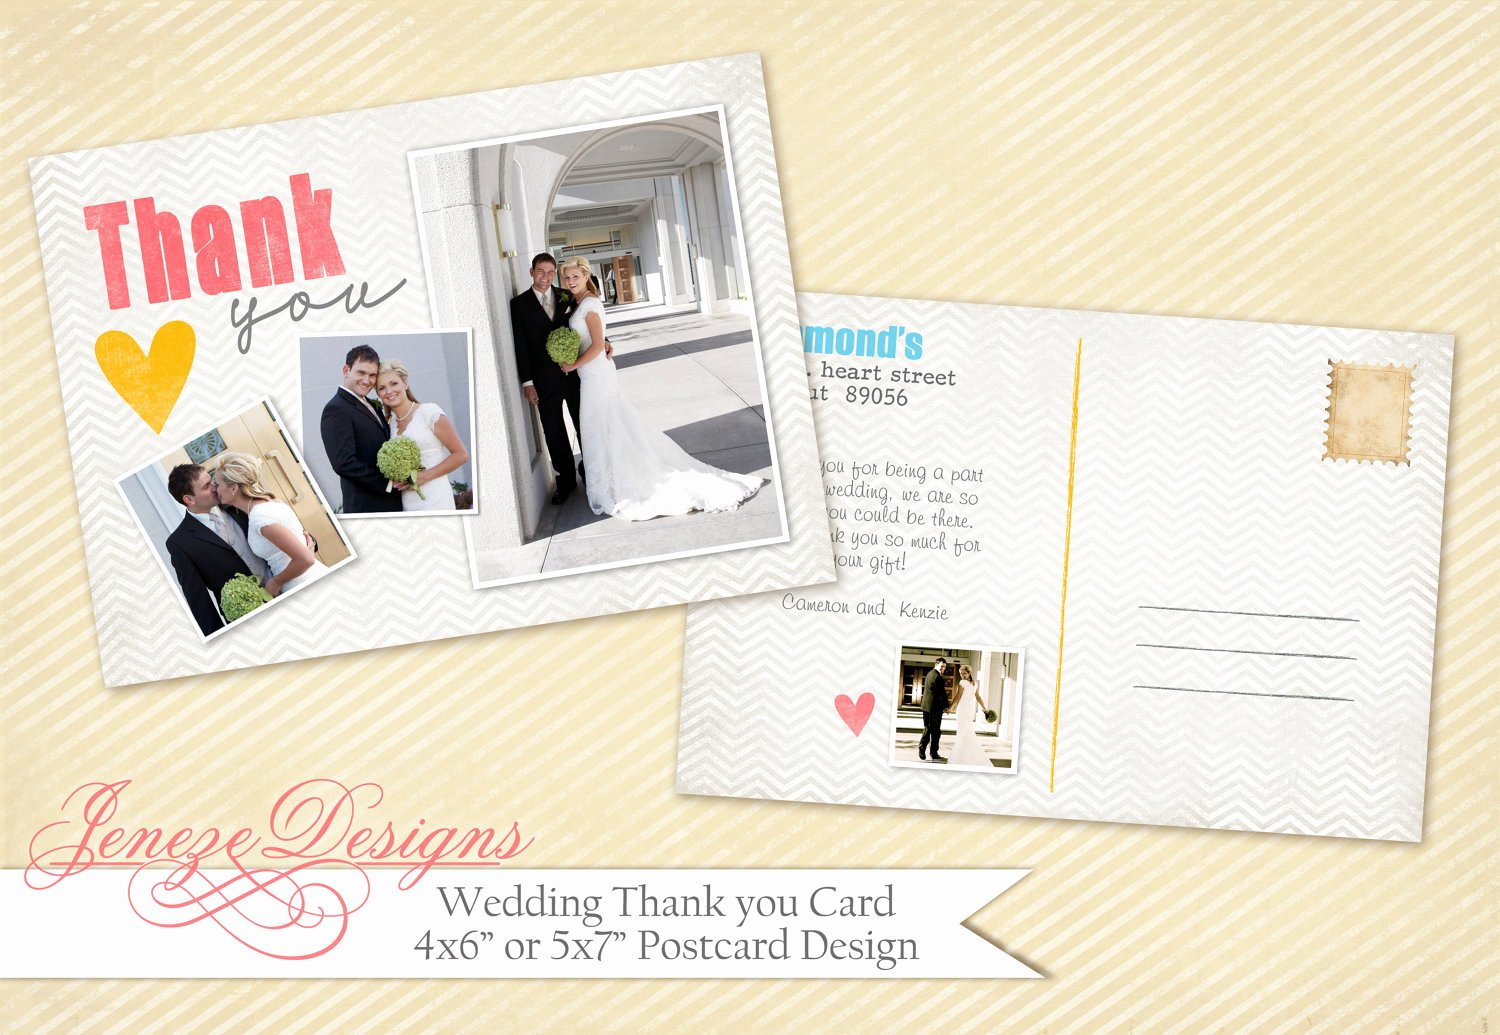 Wedding Thank You Card Template Beautiful Wedding Thank You Card Shop Template Item Tc006 by Jeneze